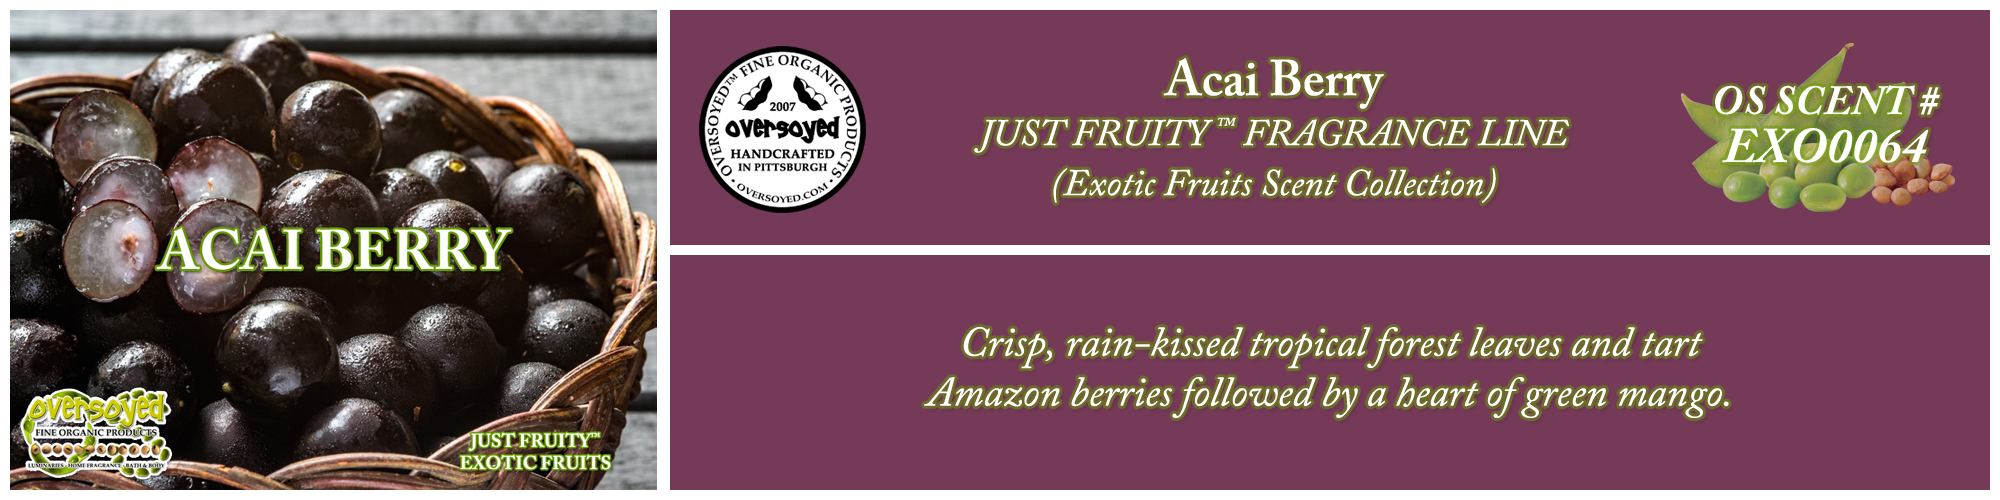 Acai Berry Handcrafted Products Collection